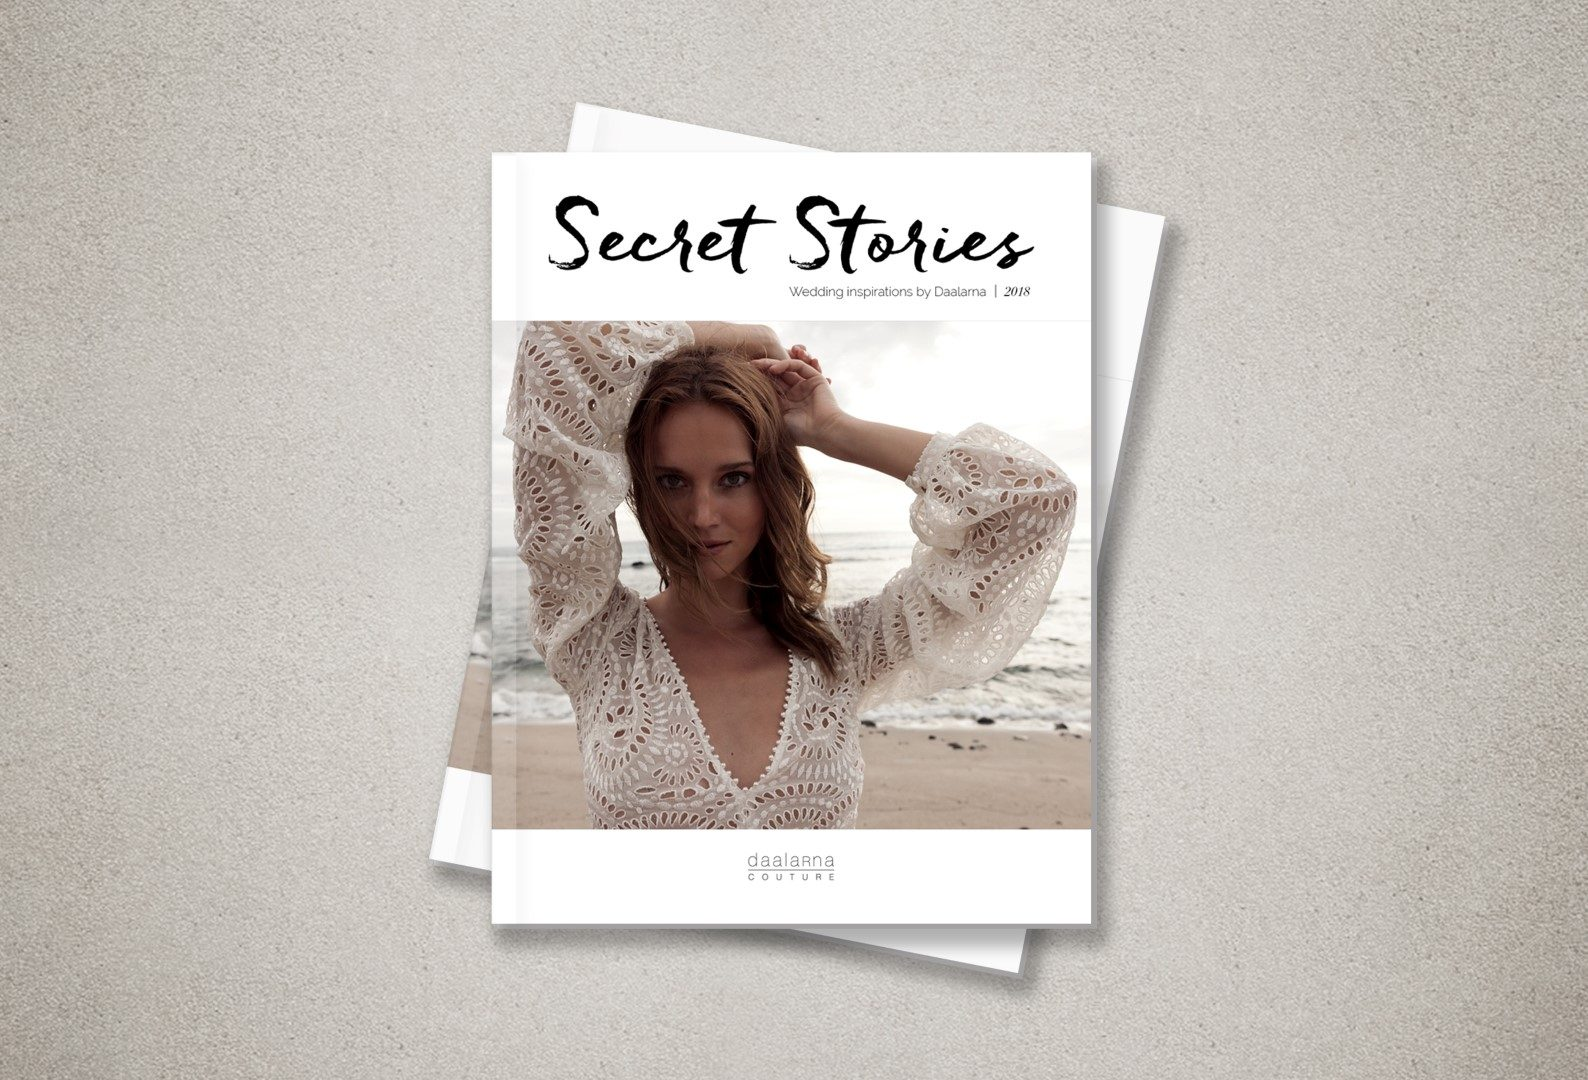 Secret Stories magazin 2018